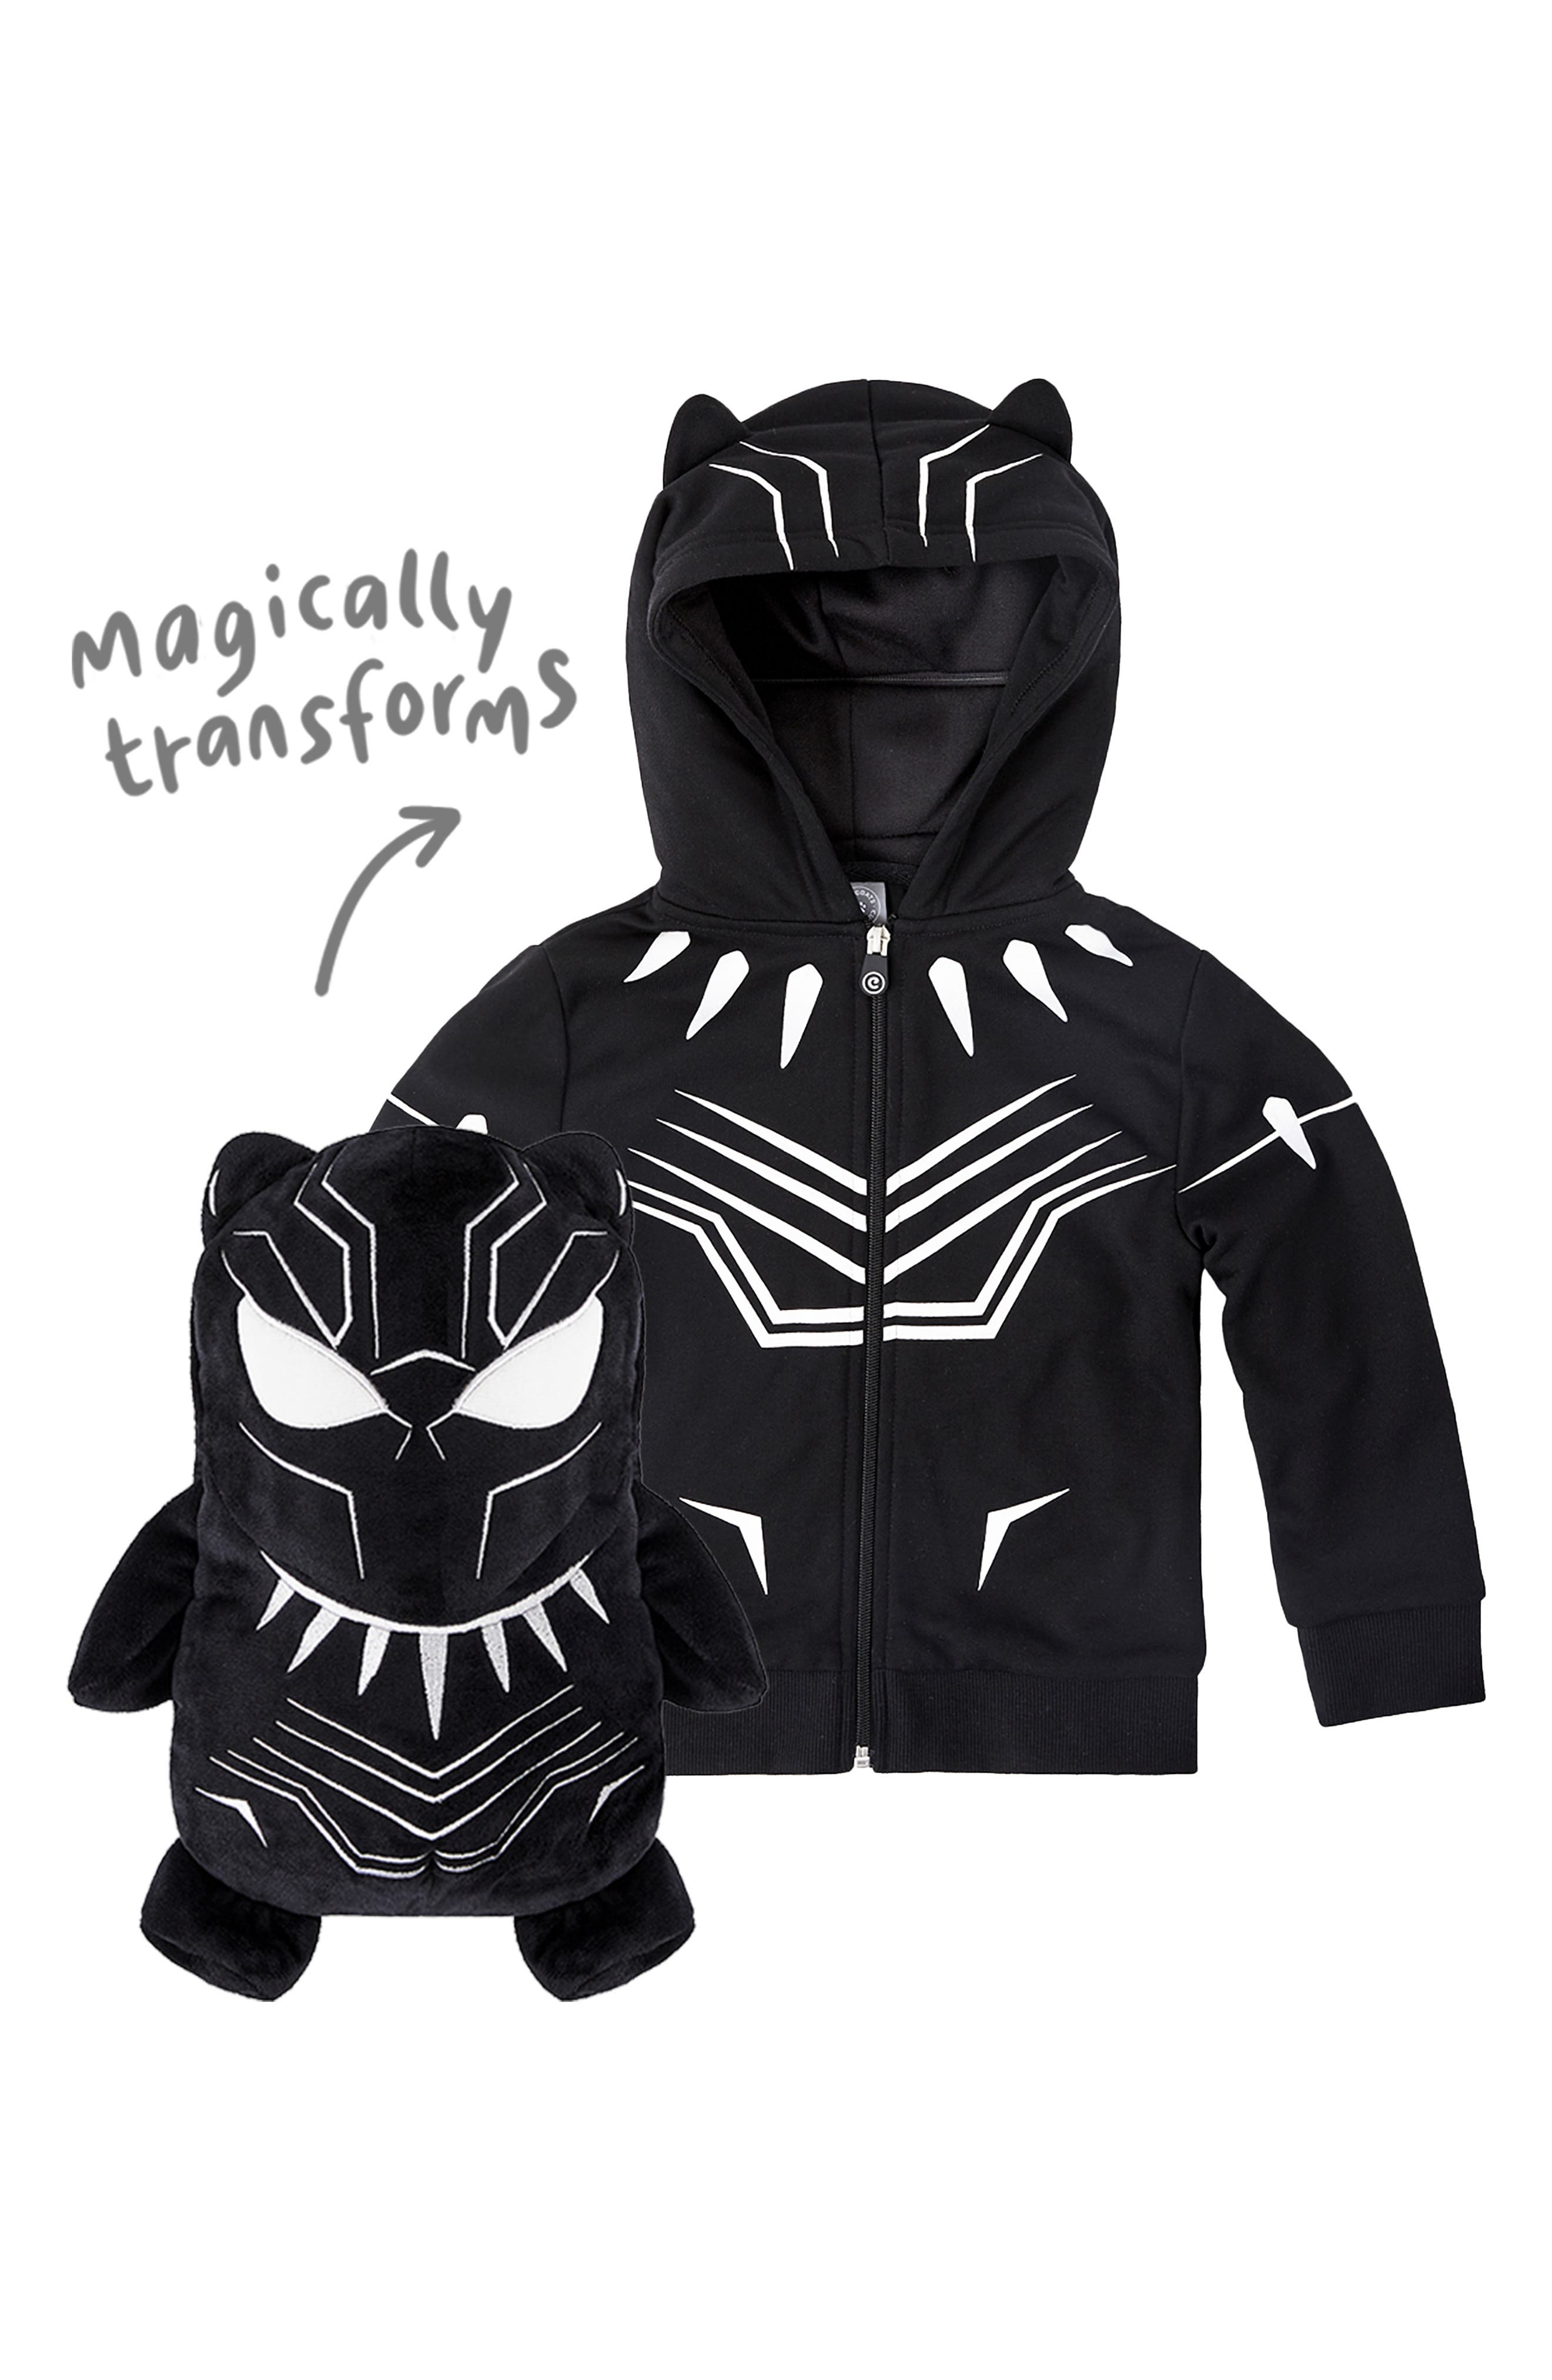 Marvel<sup>®</sup> 2018 Black Panther<sup>®</sup> 2-in-1 Stuffed Animal Hoodie,                             Alternate thumbnail 3, color,                             BLACK